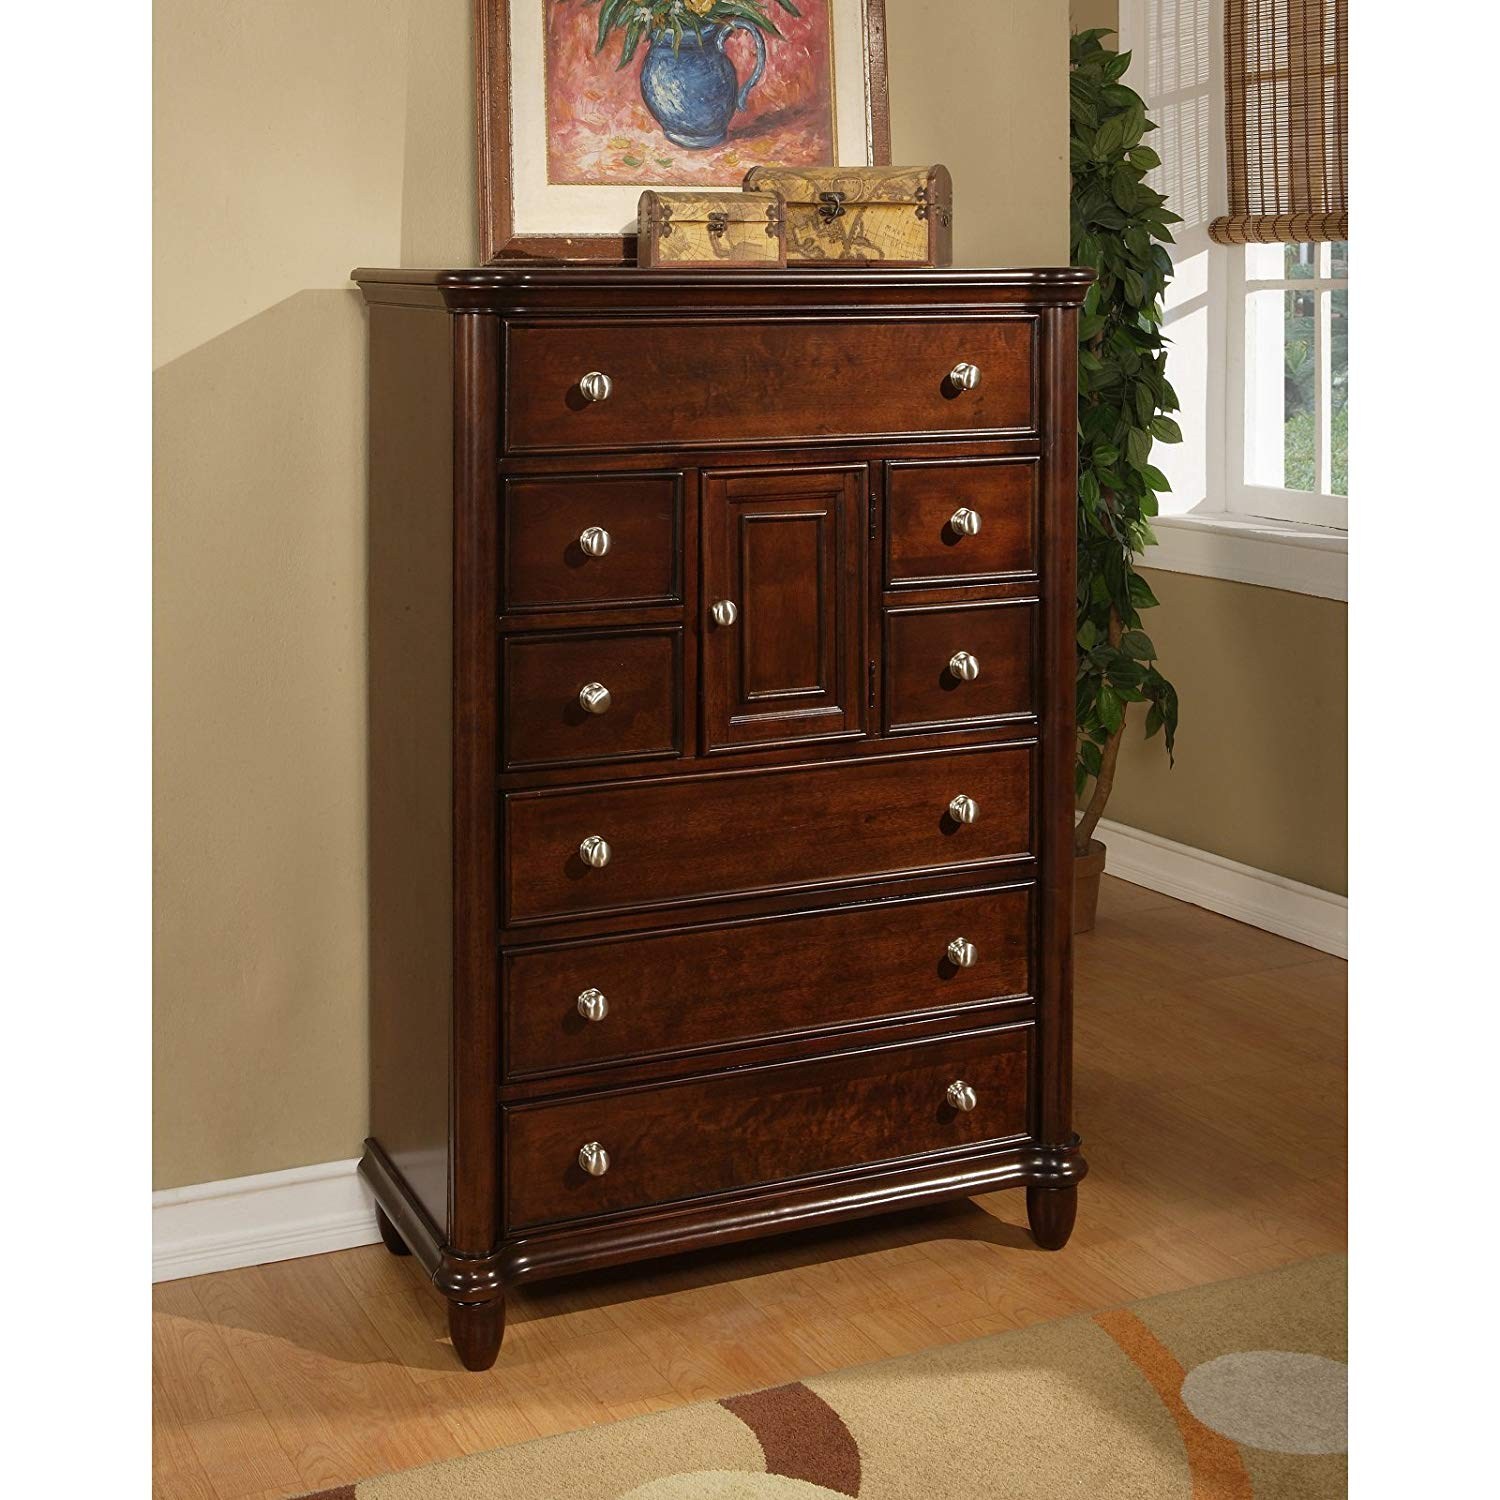 8 Drawer 1-Door Chest, 4 Large Drawers and 4 Smaller Accessory Drawers, Top Drawer is Felt-Lined, Solid, Sturdy and Long-Lasting Poplar Construction, Beveled Crown, Warm Brown Cherry